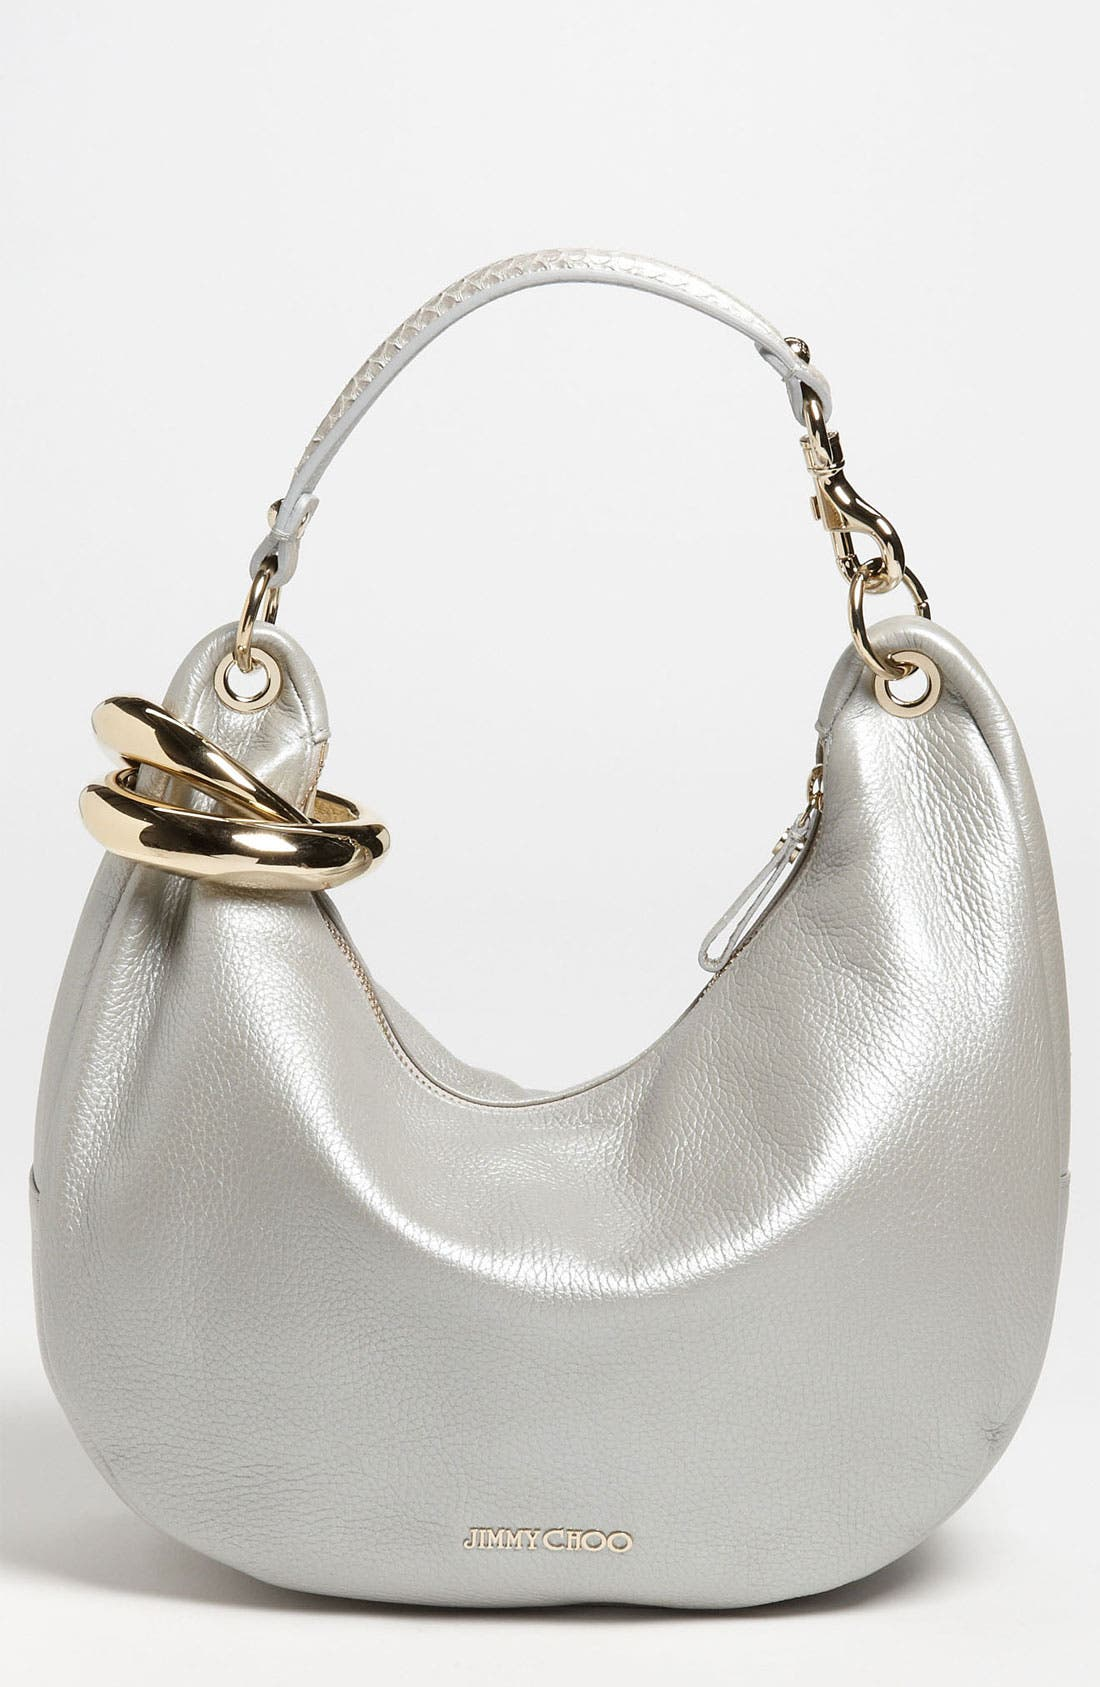 Main Image - Jimmy Choo 'Solar - Small' Pearlized Metallic Leather Hobo